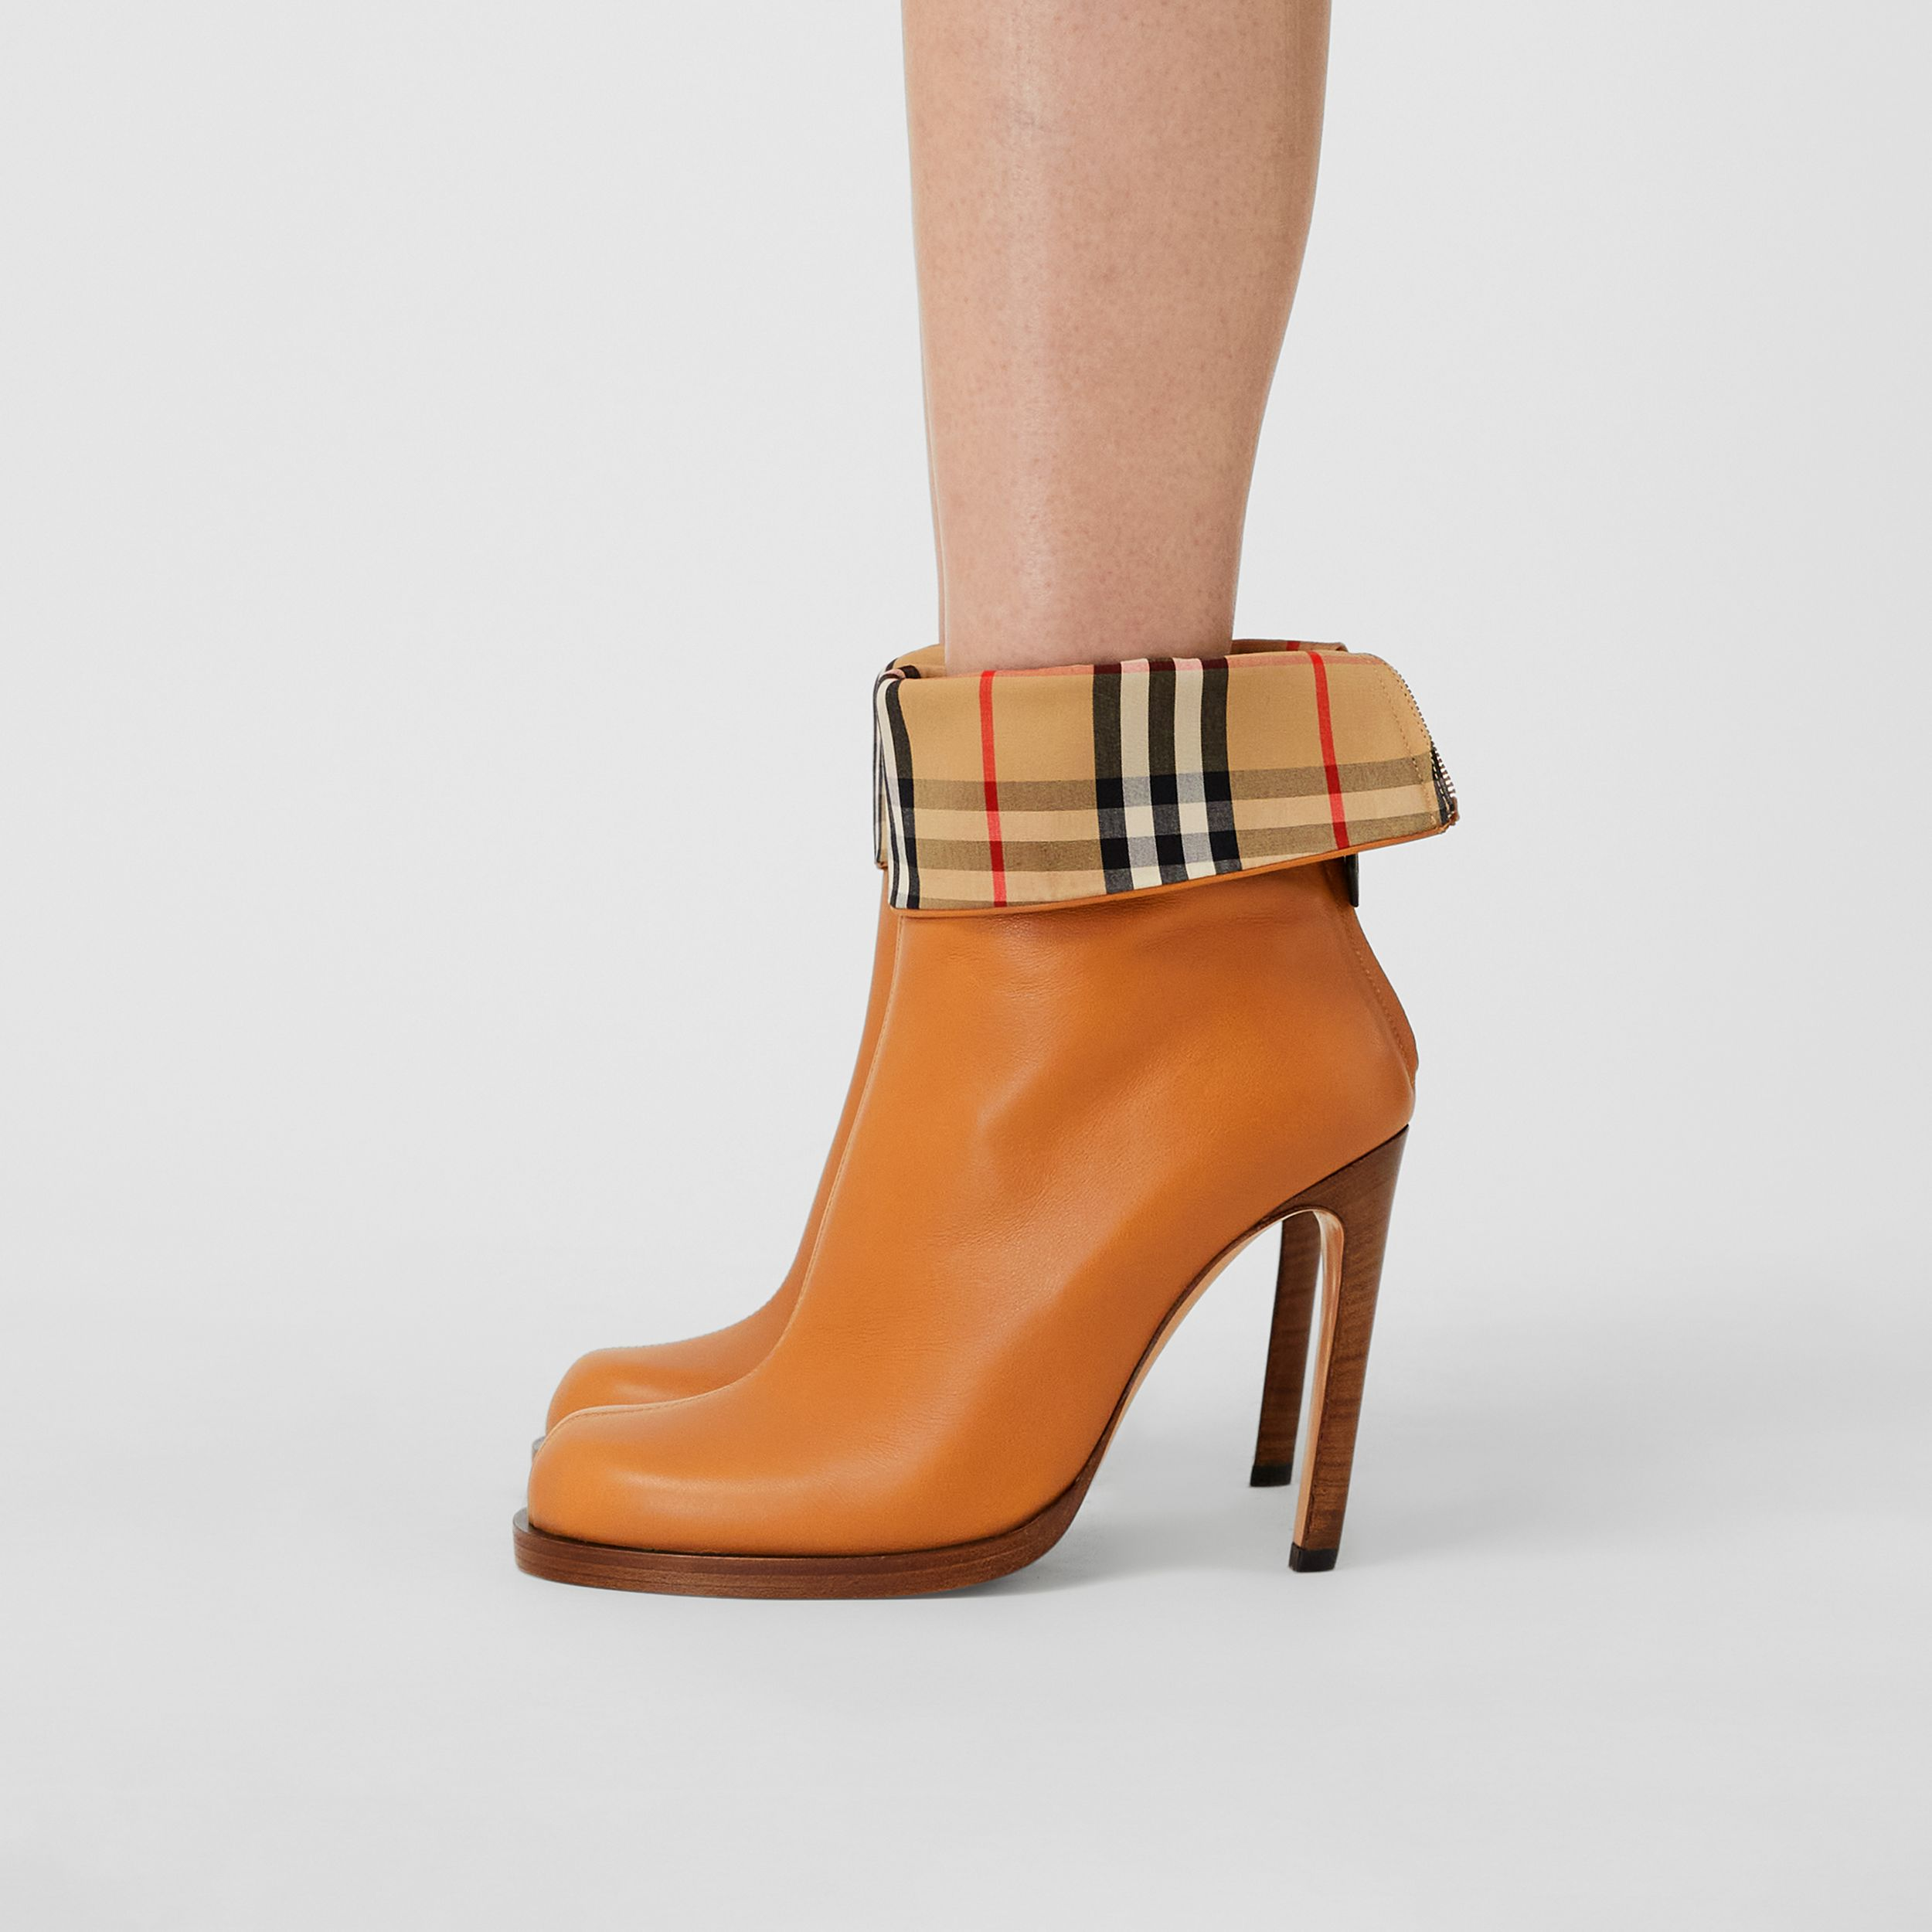 Vintage Check-lined Leather Ankle Boots in Ochre - Women | Burberry - 3